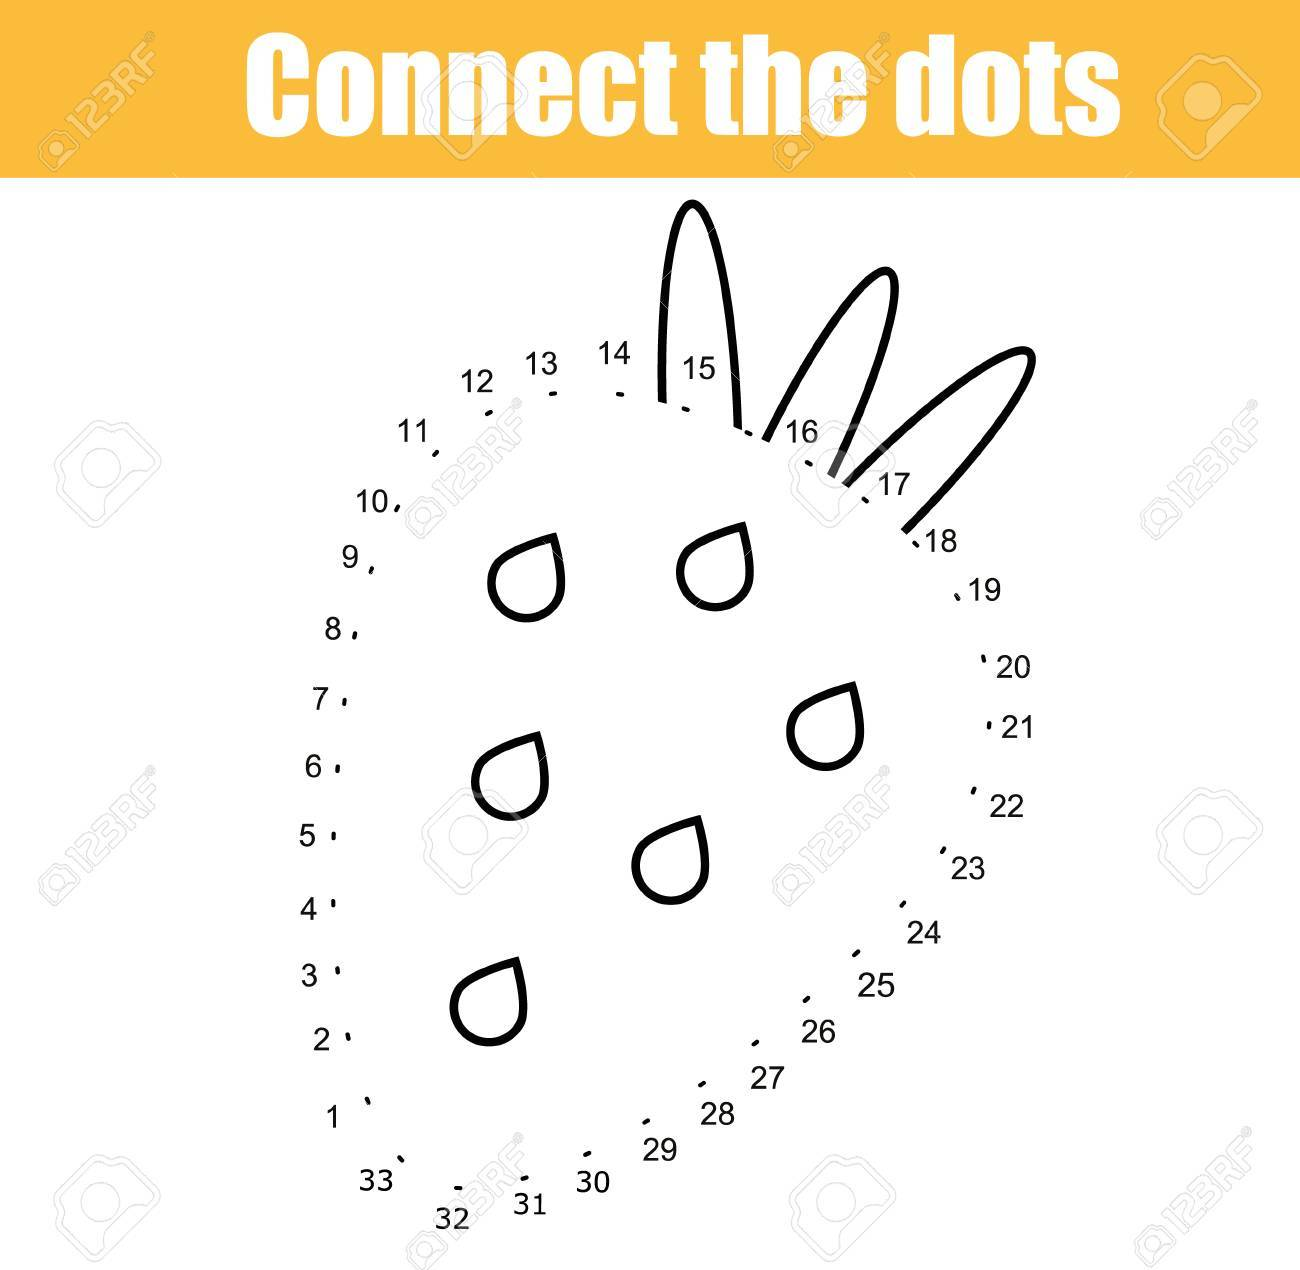 graphic relating to Dot Game Printable identified as Talk the dots youngsters enlightening drawing video game. Dot in direction of dot..